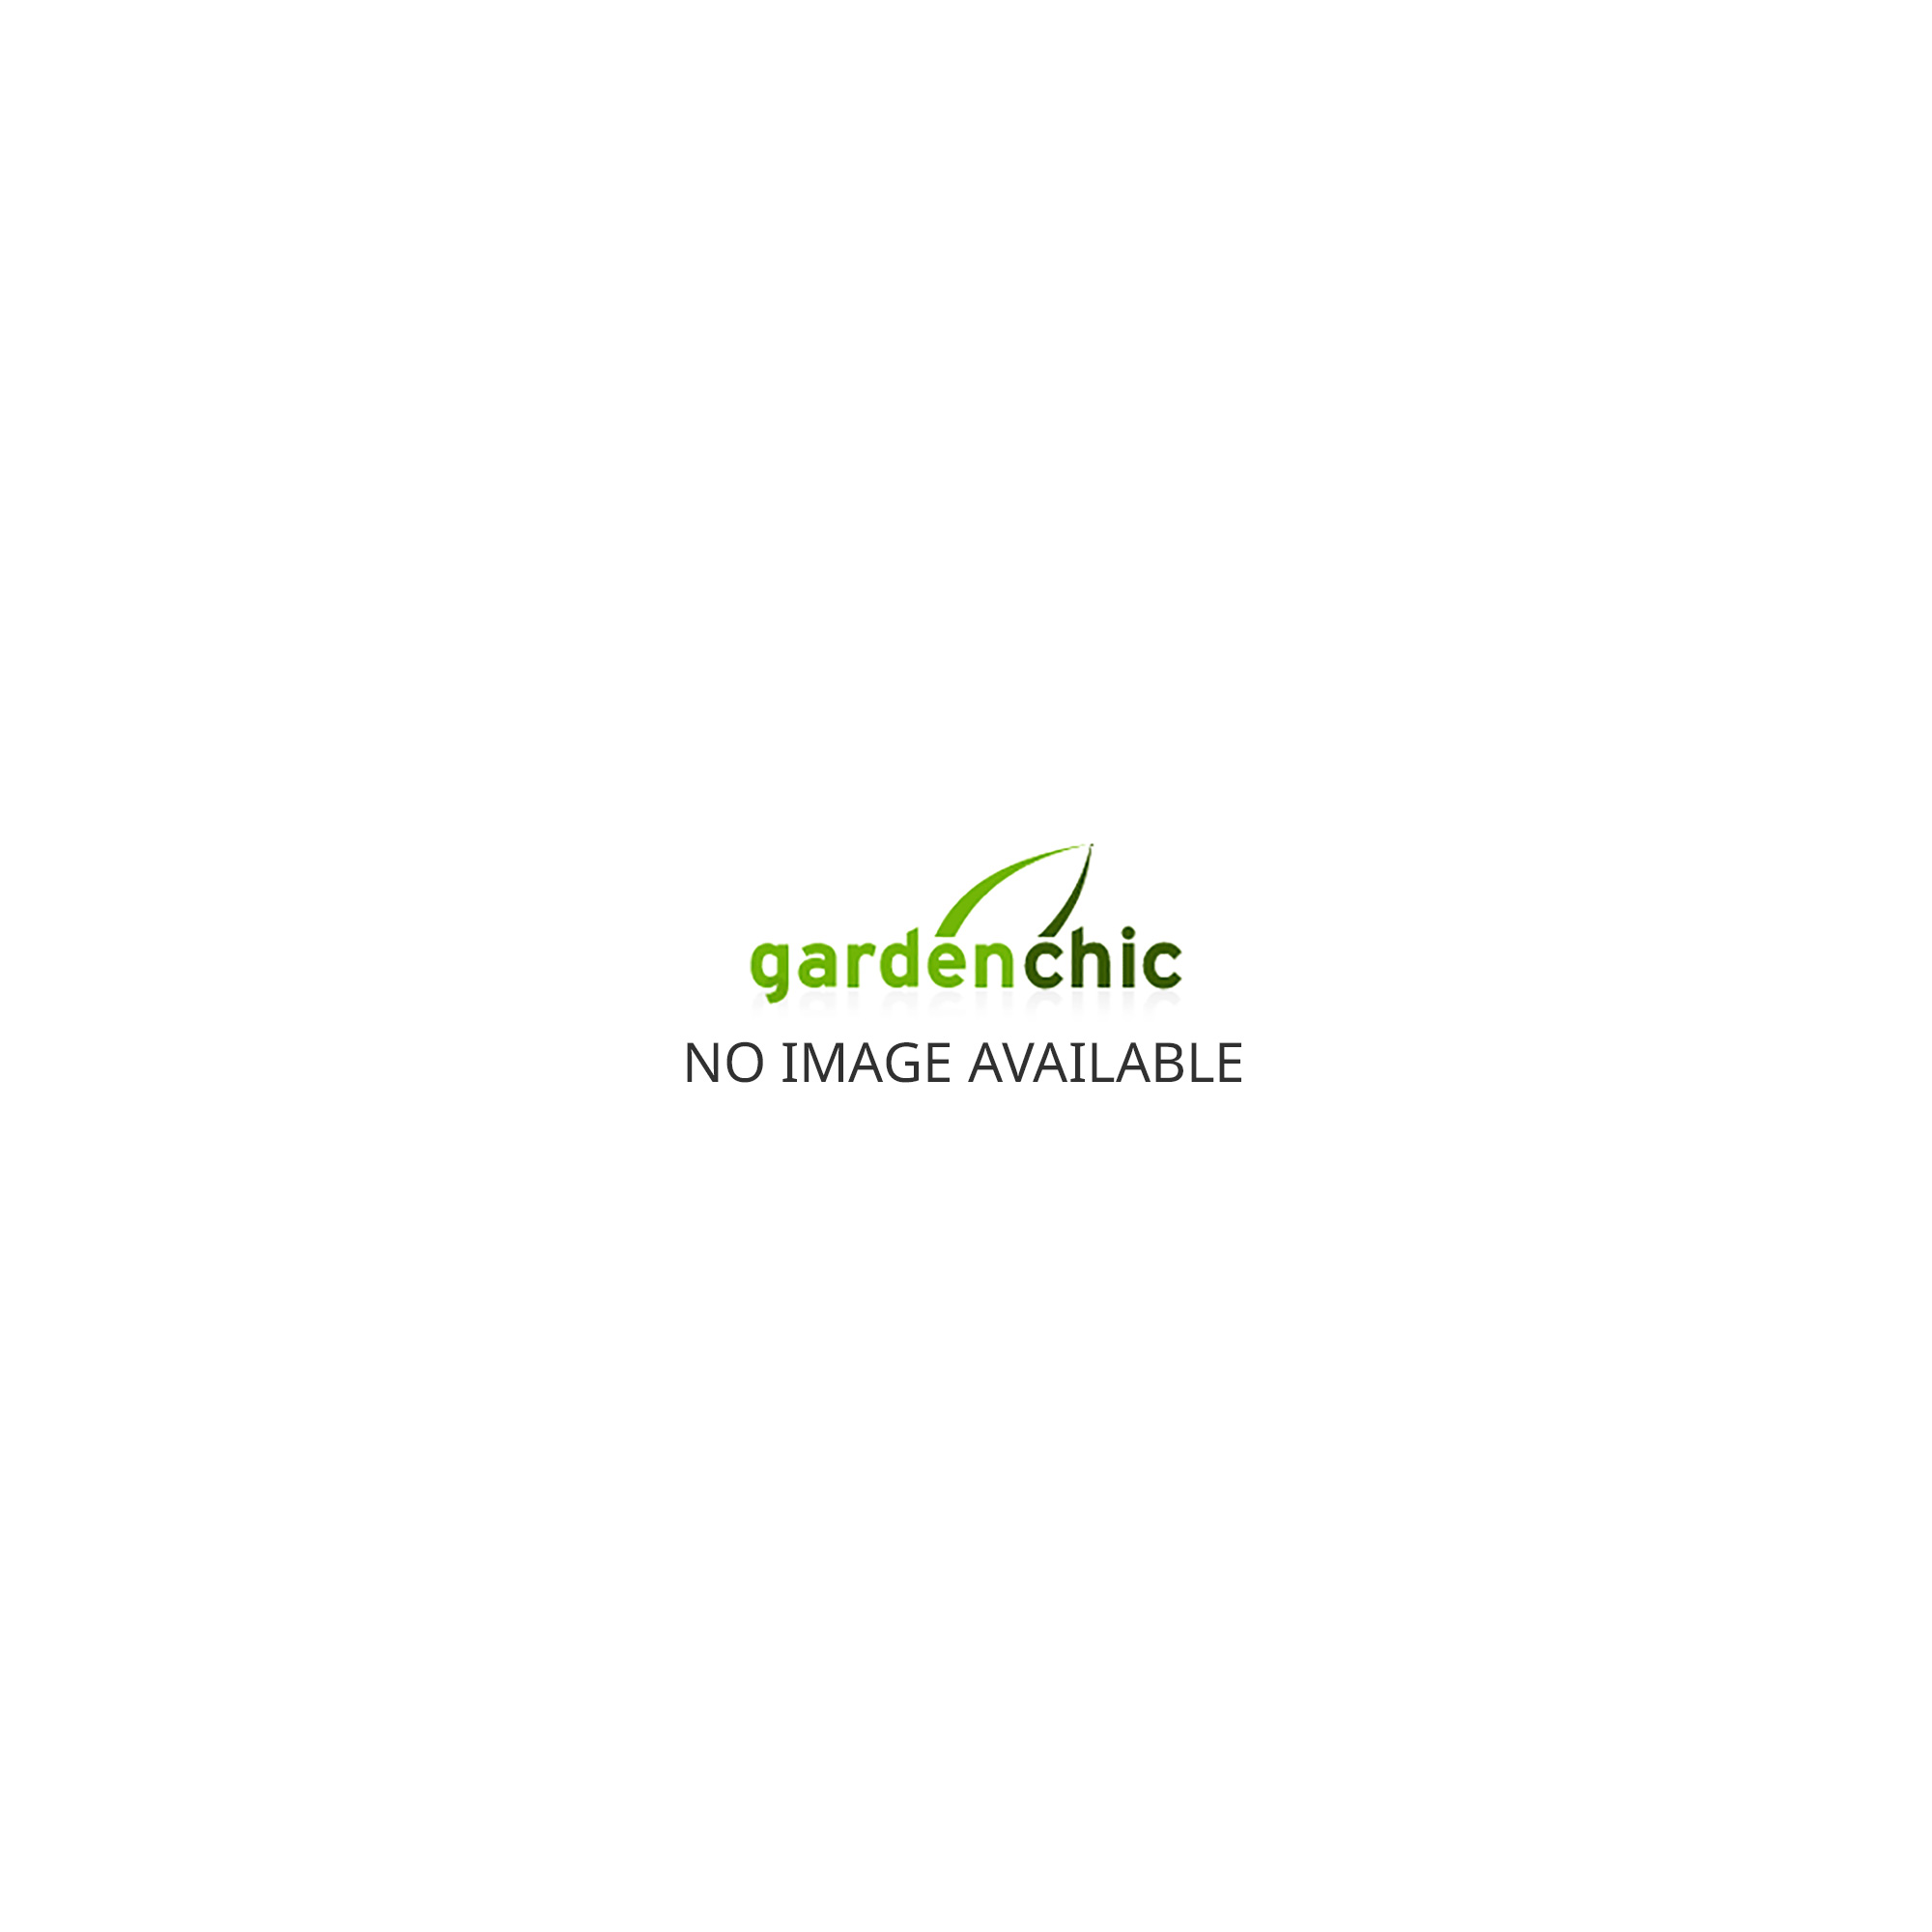 Blockley 8 x 12 Greenhouse (Black) FREE Waterbutt, Connection Kit and Blinds until May 2018